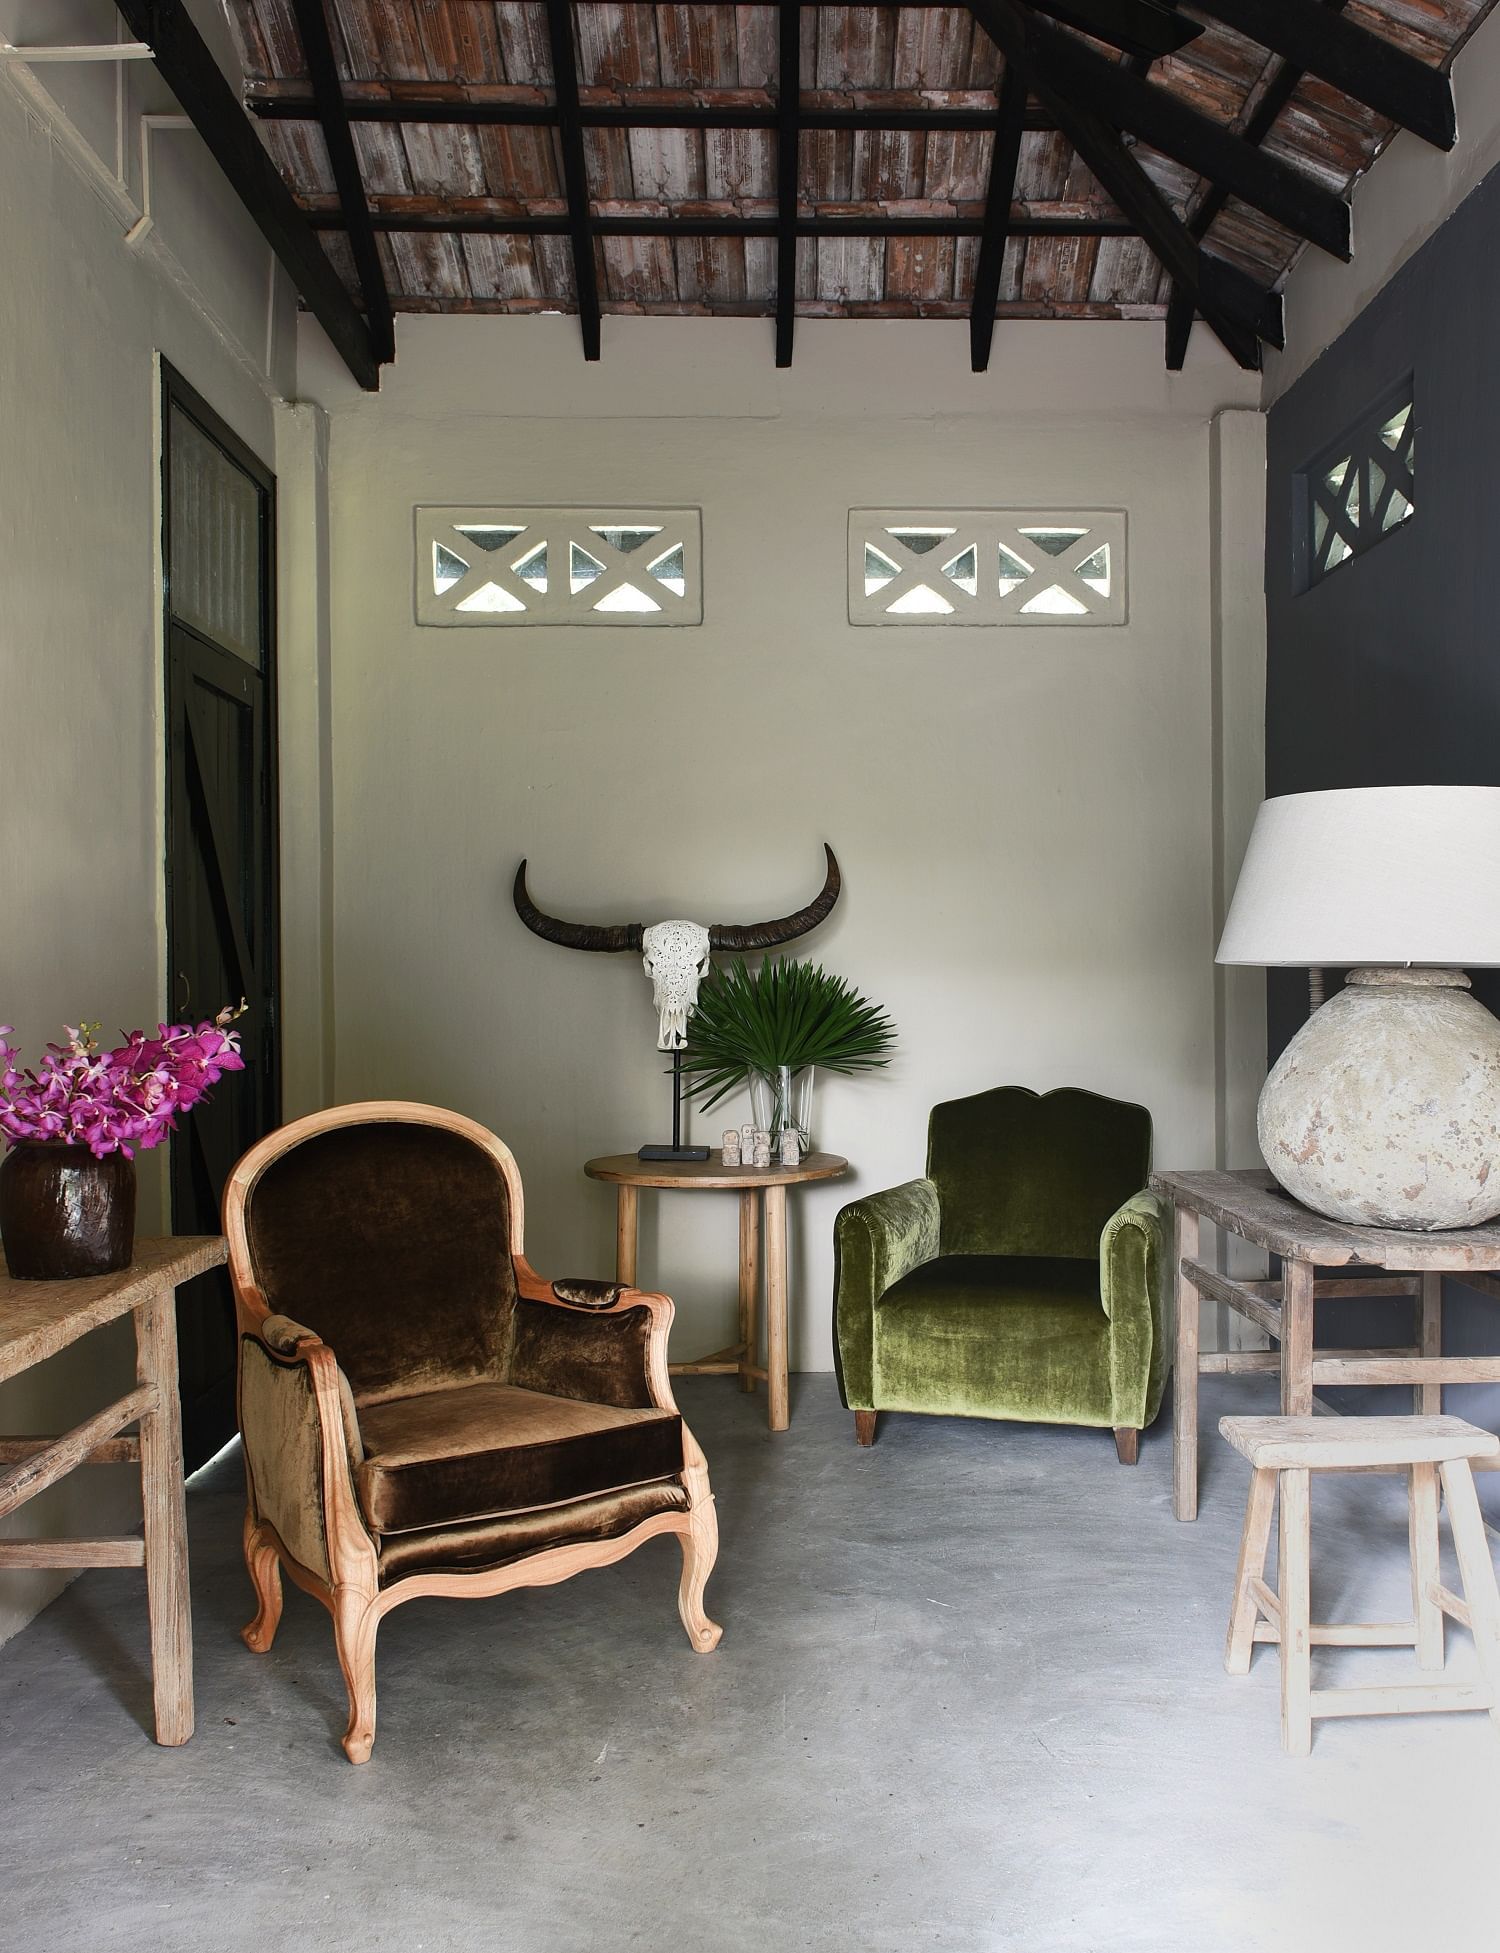 New furniture shop sells reupholstered vintage chairs | Home & Decor ...